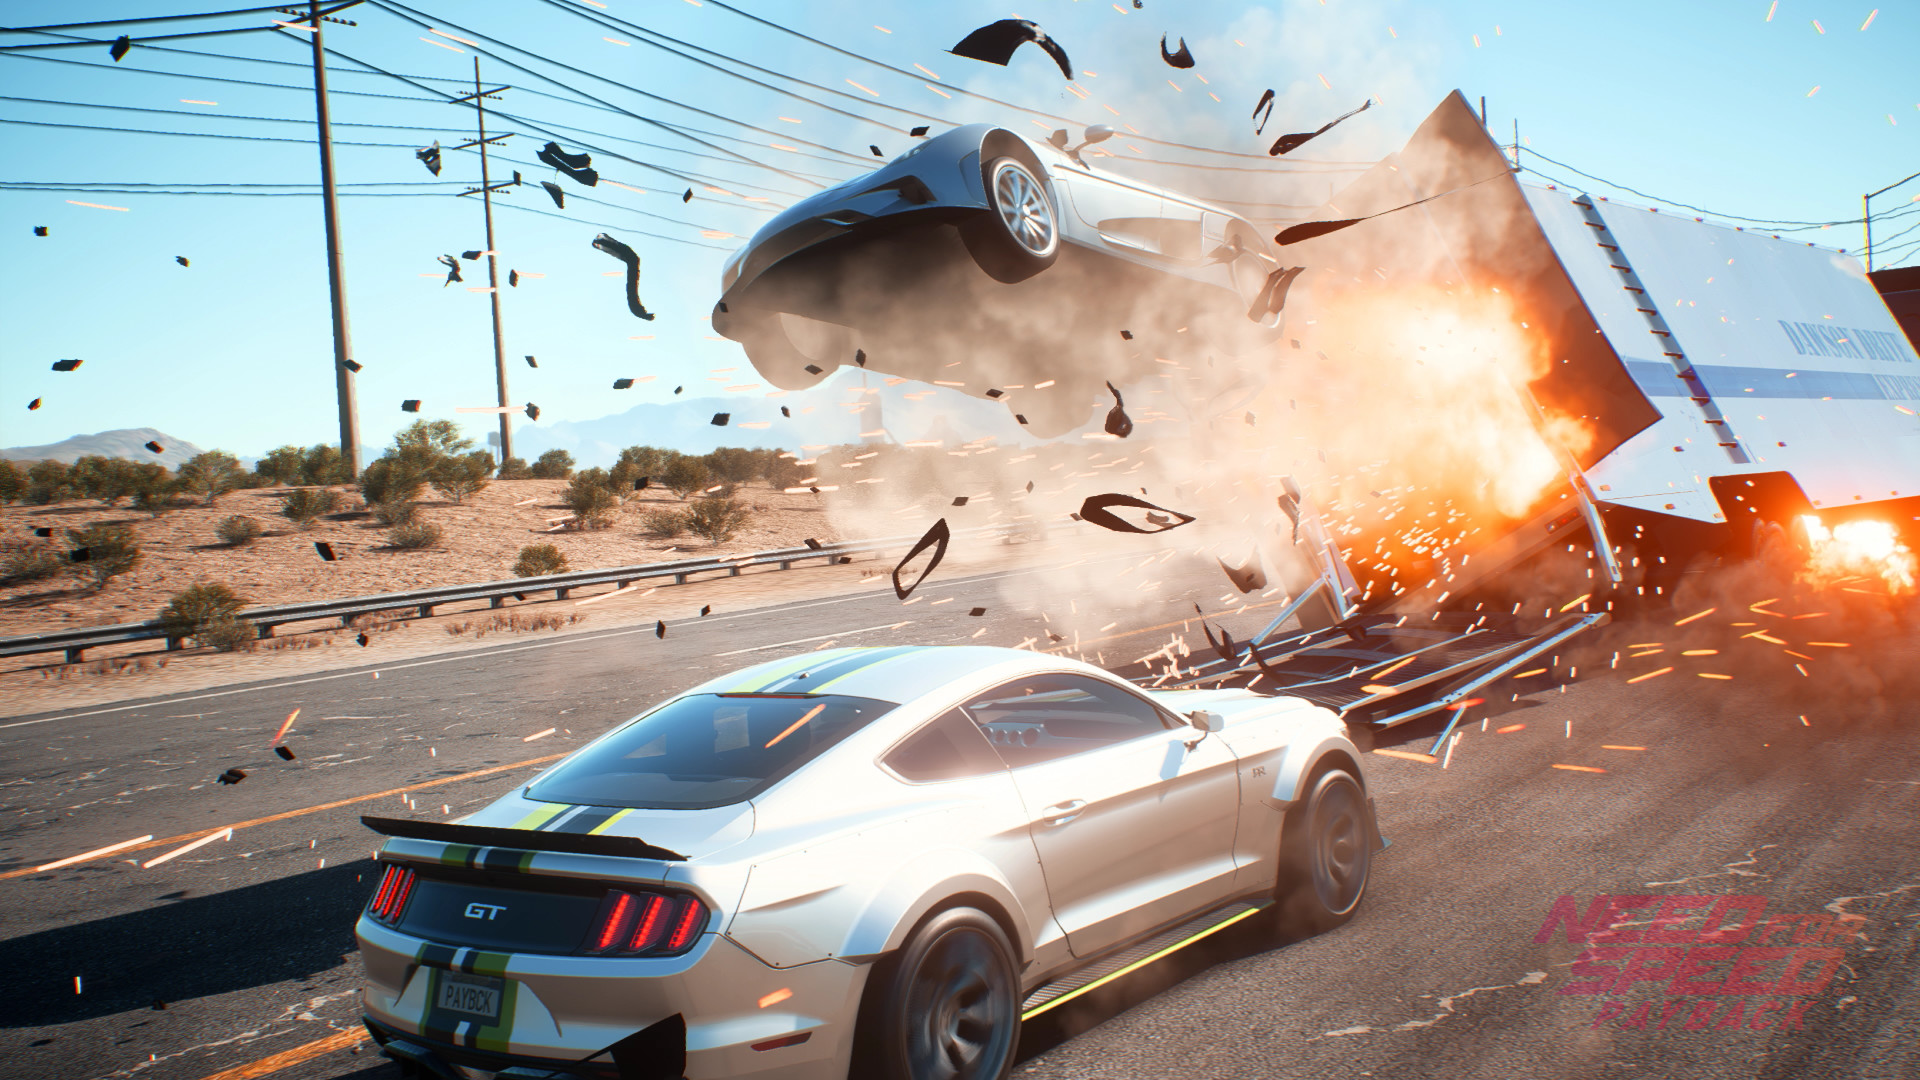 Скриншот *Need for Speed Payback Deluxe Edition [PS4] 5.05 / 6.72 / 7.02 [EUR] (2017) [Русский] (v1.10)*